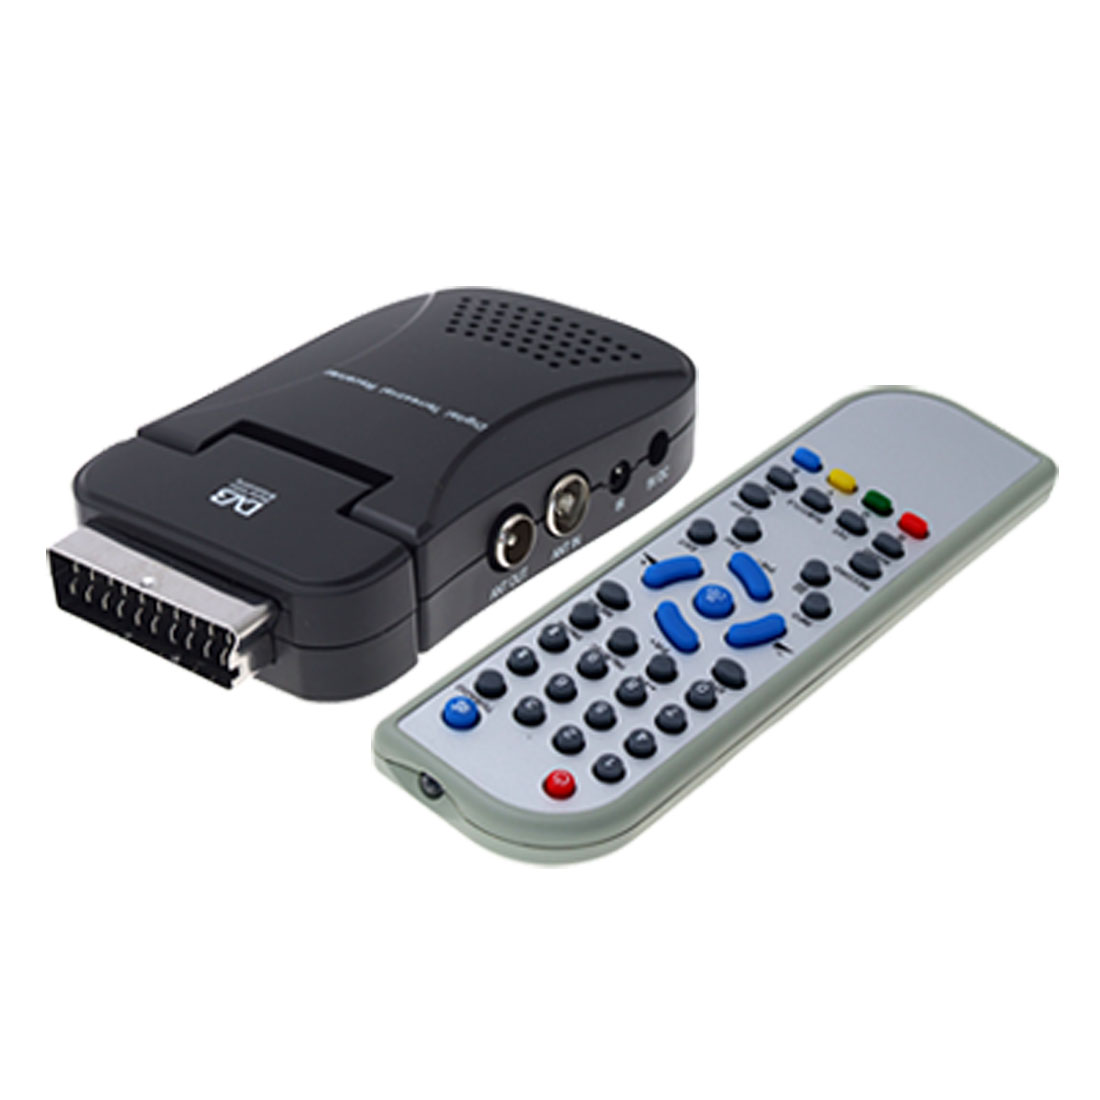 DVB-T Receiver Scart Interface PVR Remote Controller